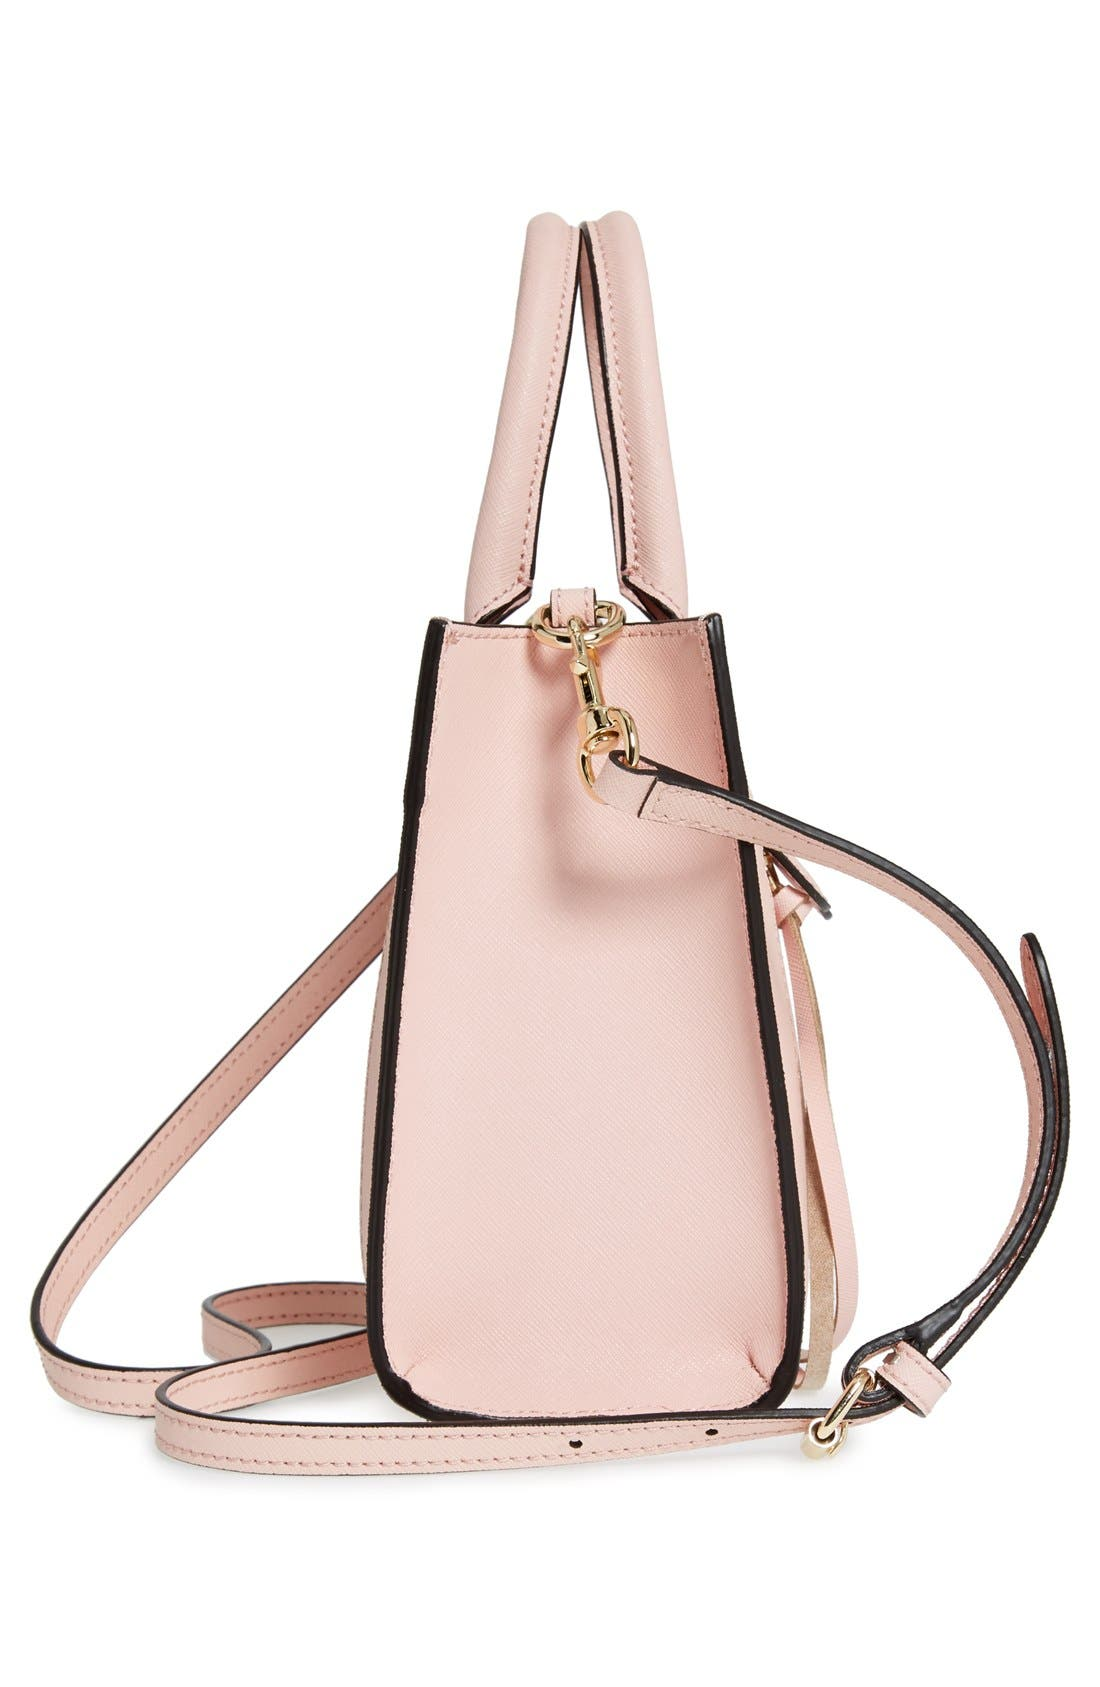 'Mini MAB Tote' Crossbody Bag,                             Alternate thumbnail 90, color,